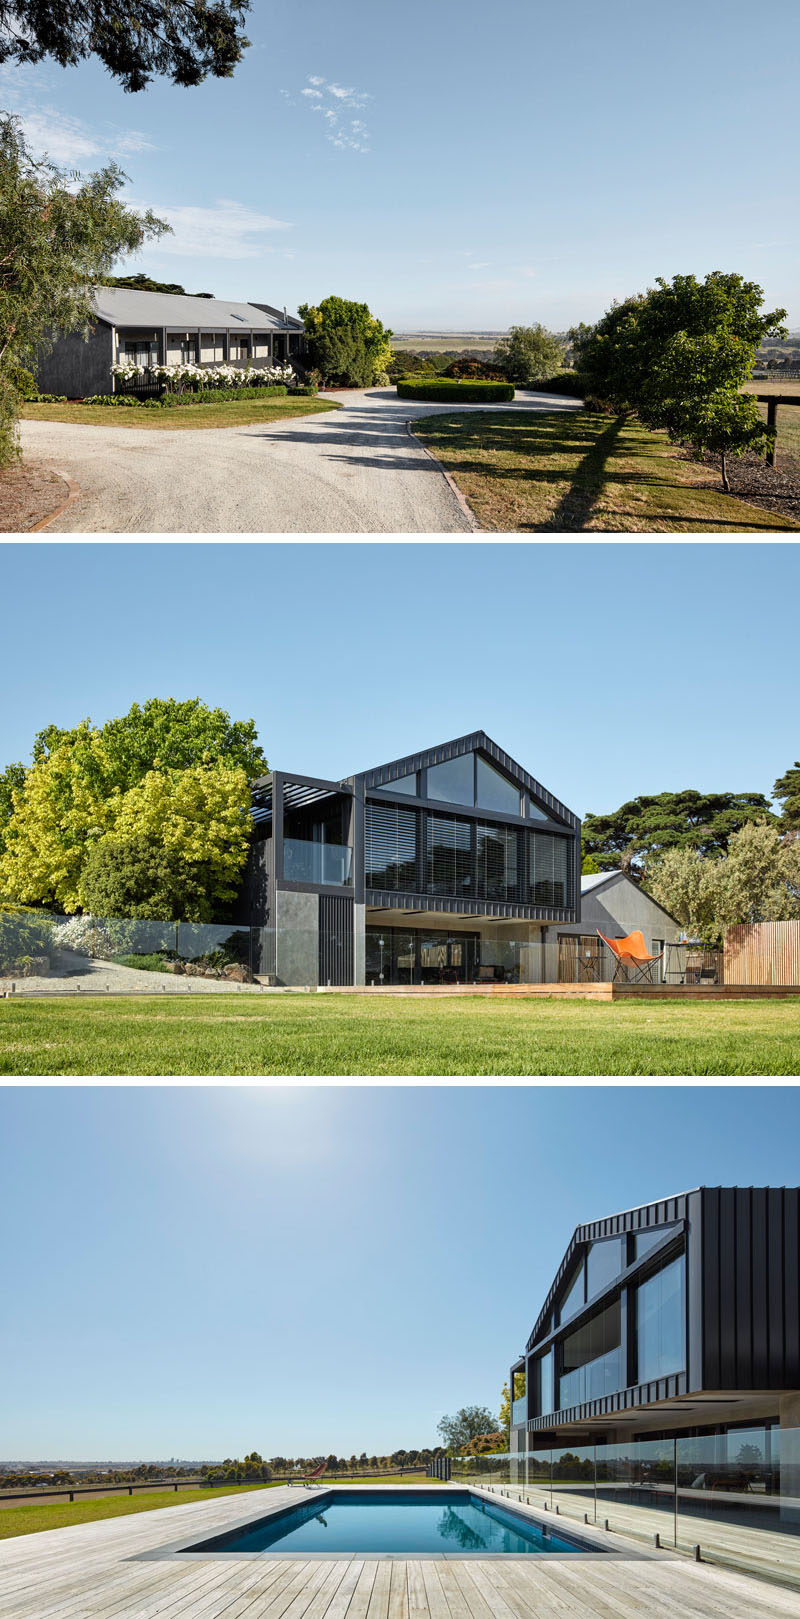 Black colorbond cladding was used for this new and modern house addition to create a striking contrast to the existing structure, which was rendered in a grey concrete. #ModernArchitecture #ModernHouse #SwimmingPool